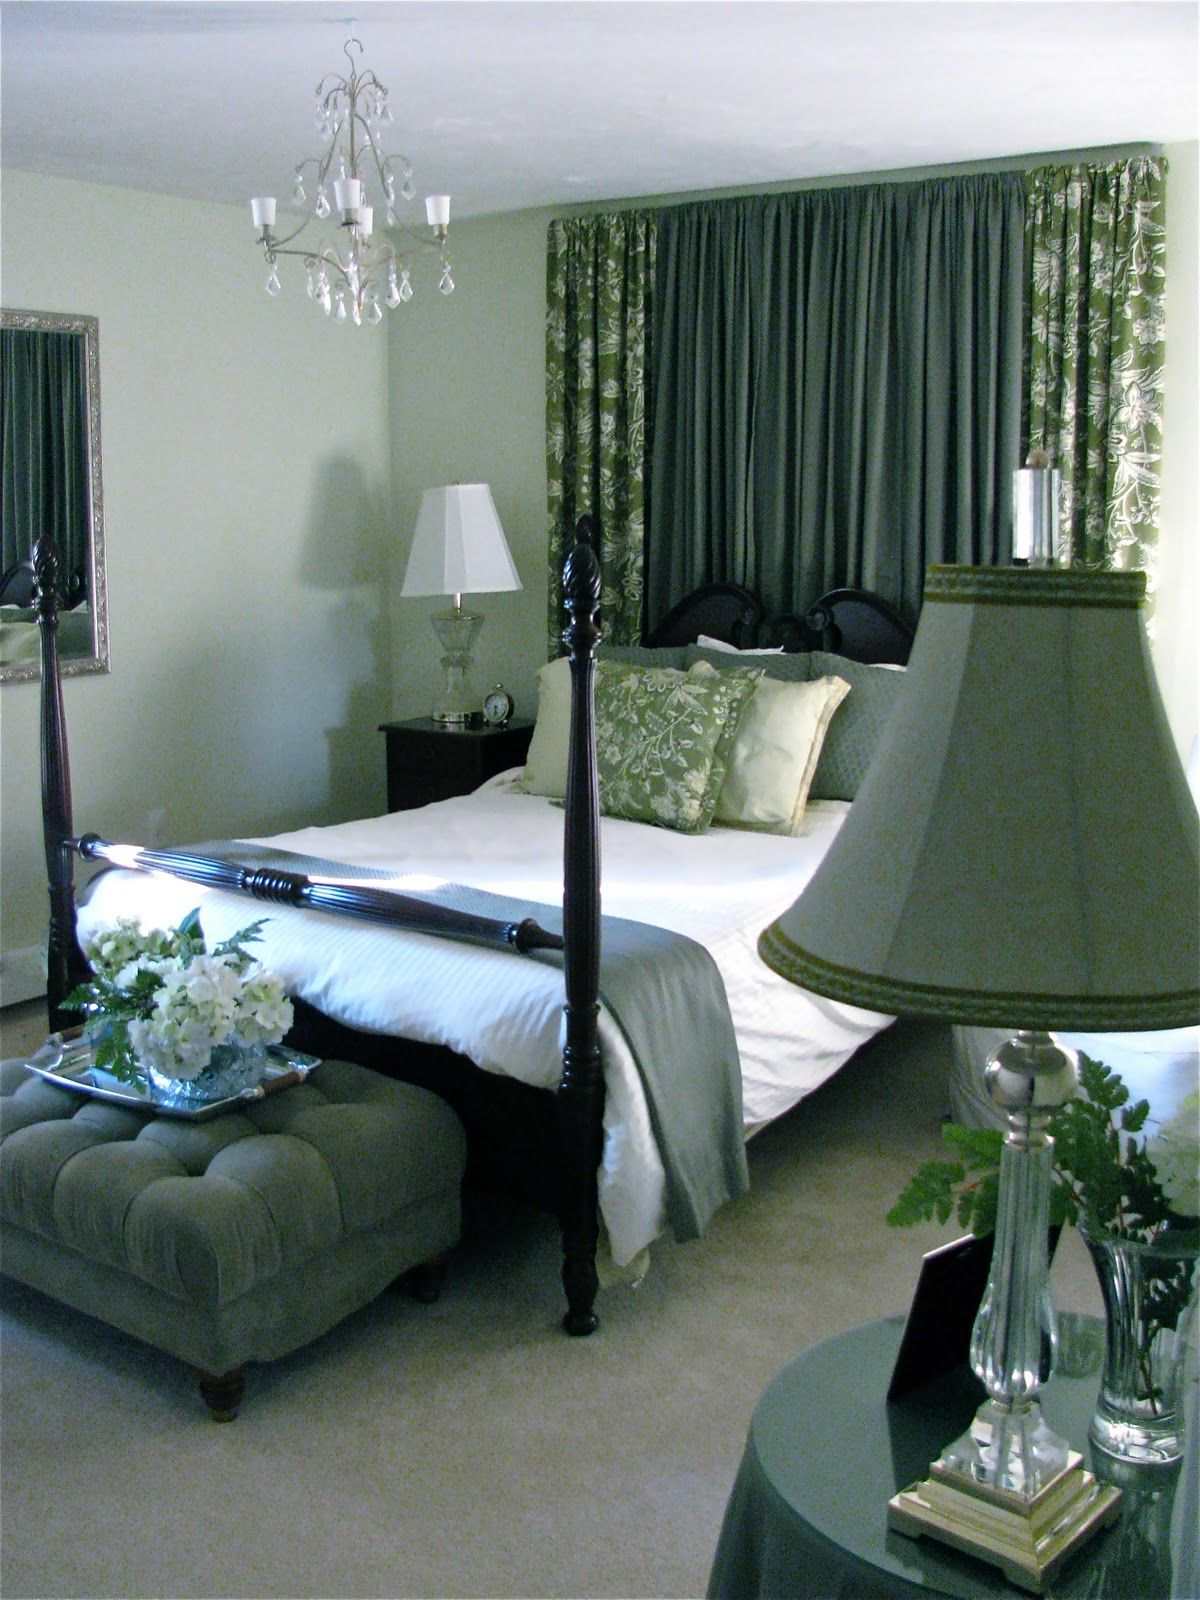 Curtains On Wall Behind Bed Curtain Headboard Use A Solid Color Behind The Bed And